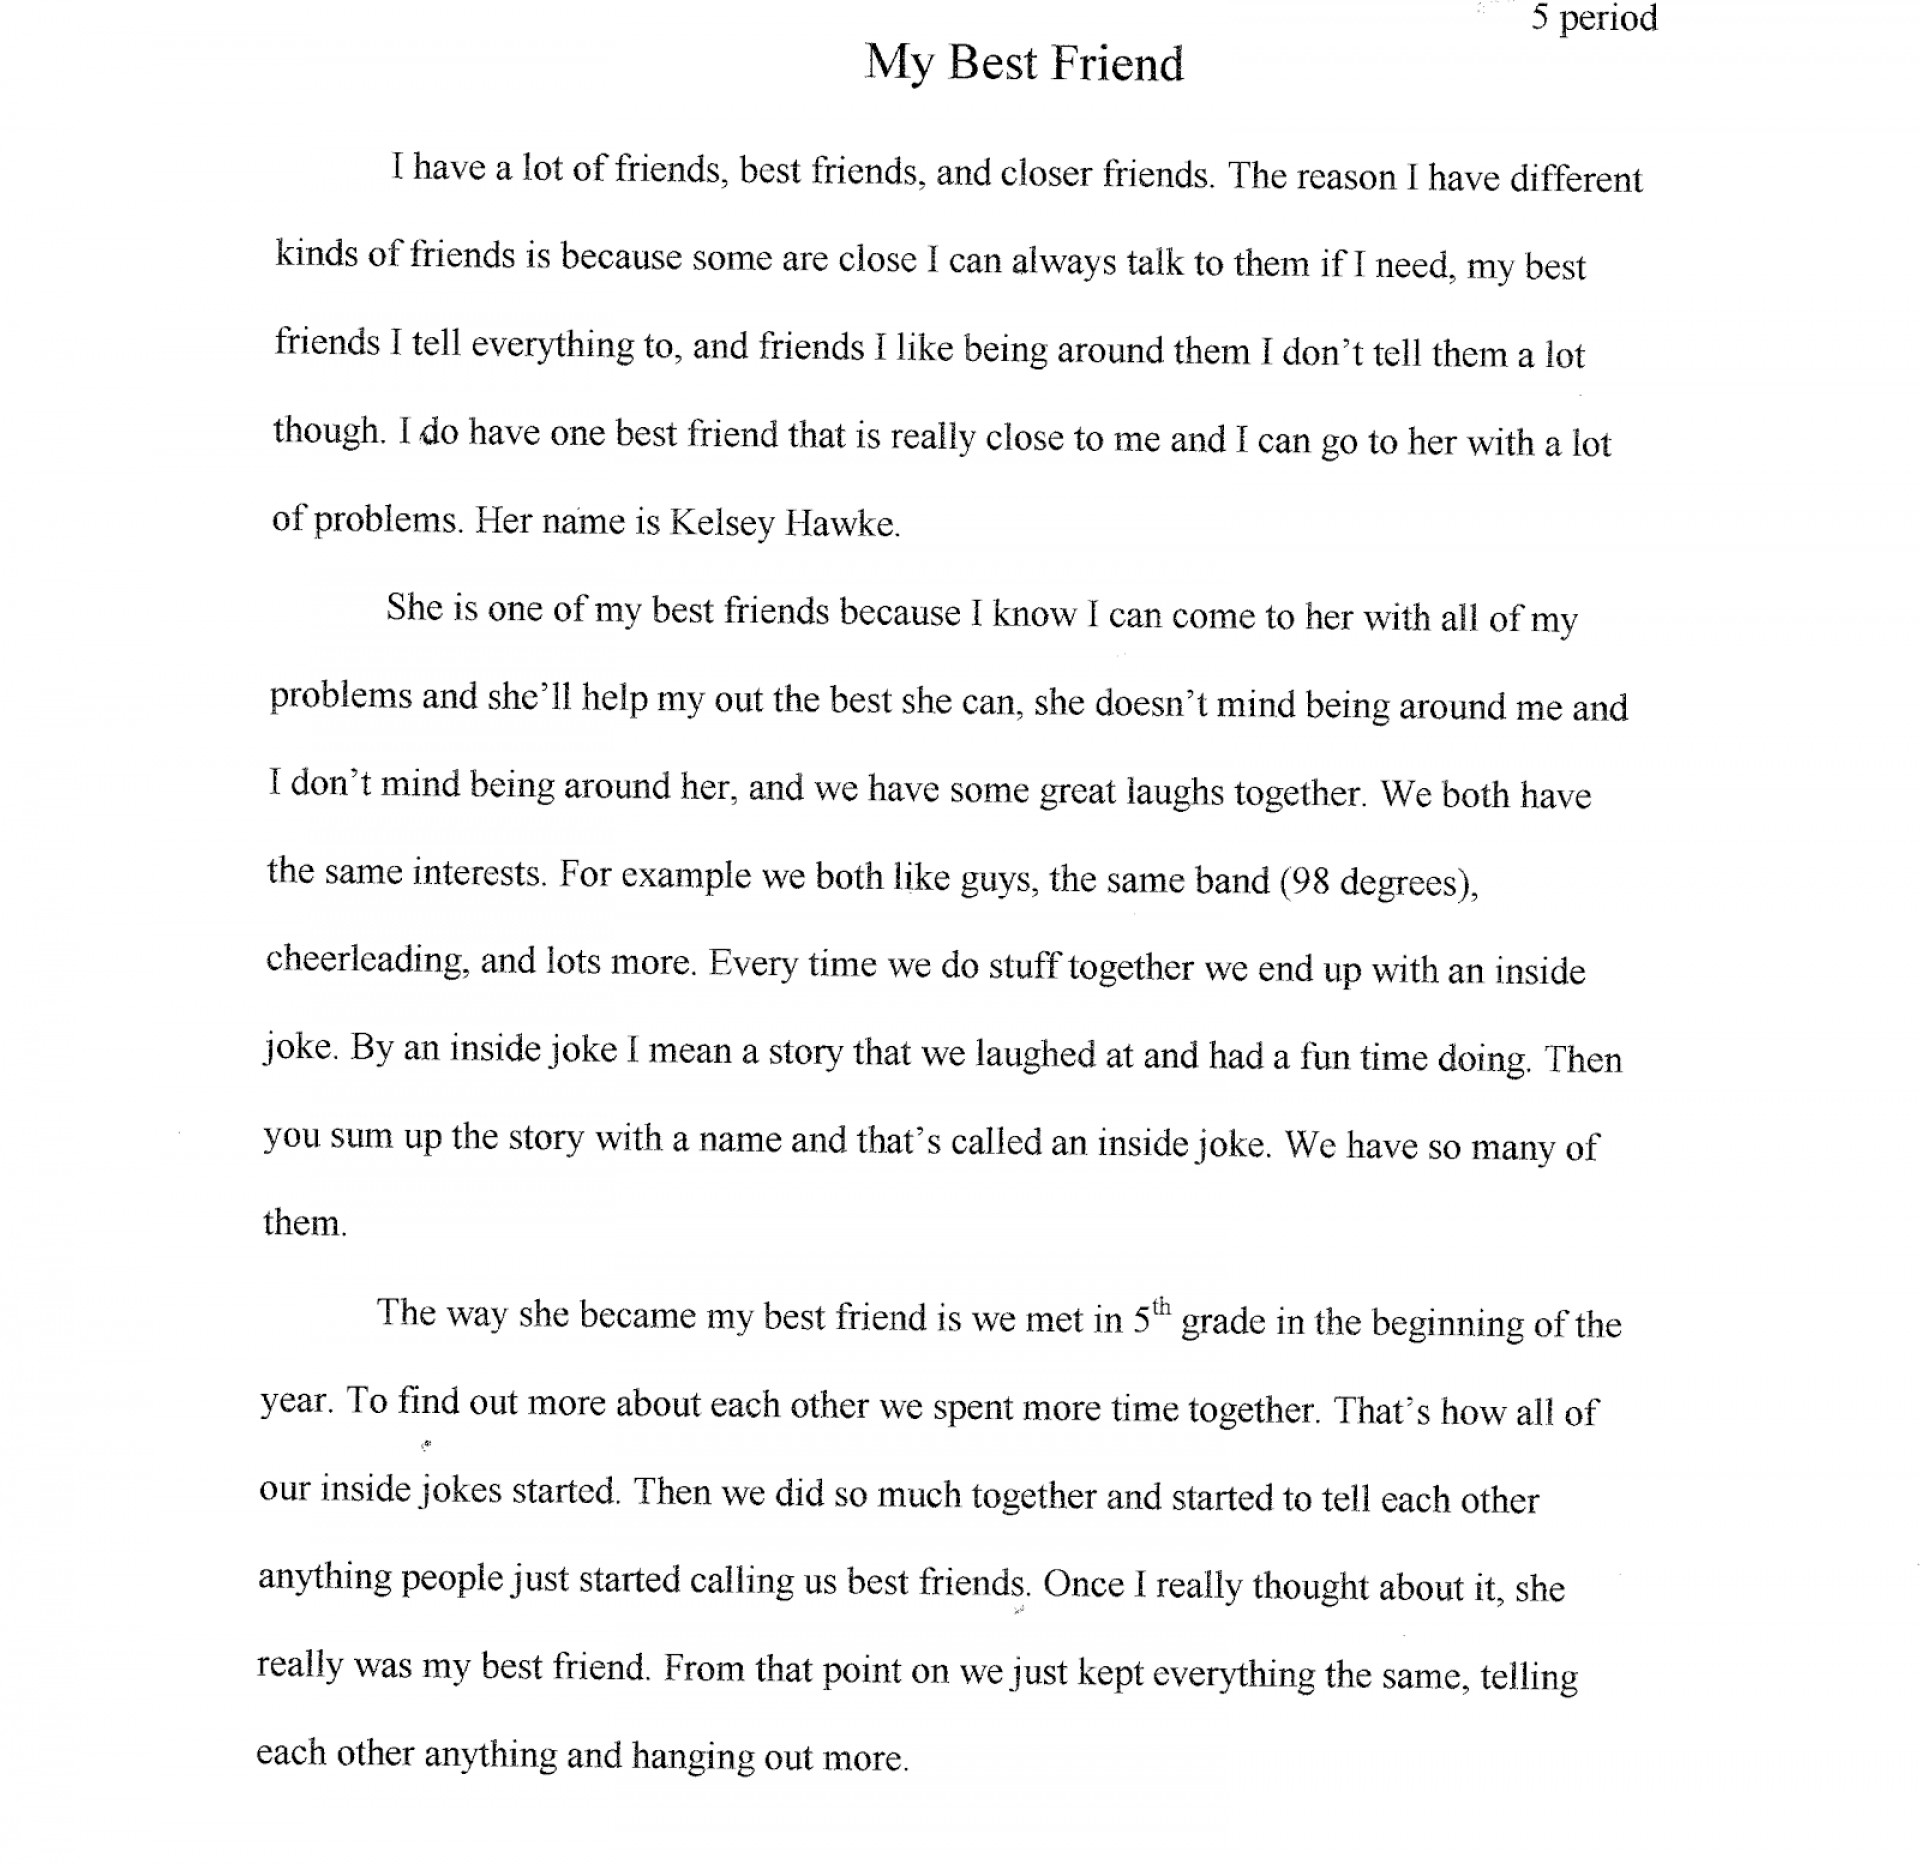 023 Essay Example 6th Bestfriend Post1 Outstanding Childhood My Conclusion Pdf 150 Words 1920